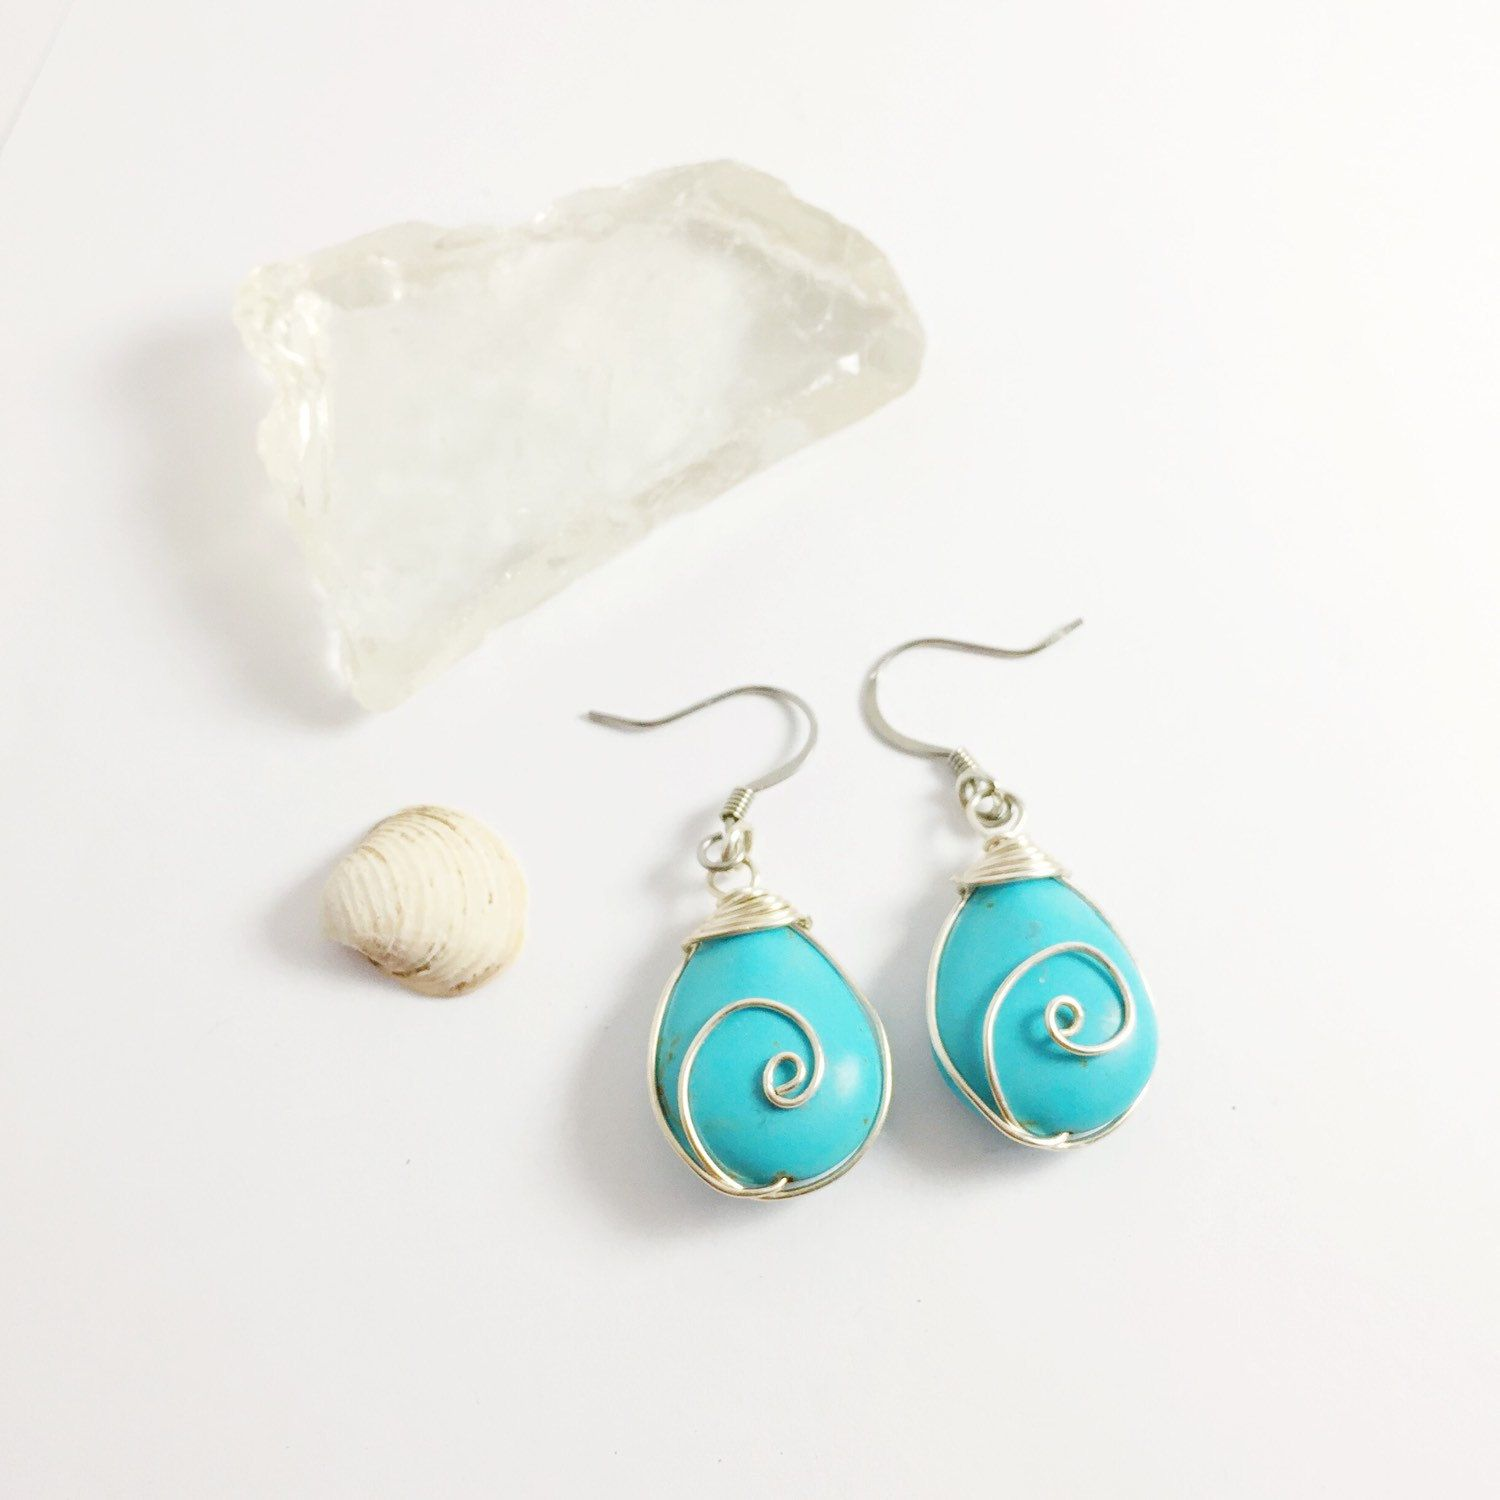 Turquoise Wirewrapped Tear Drop Earrings | Minimalist Jewerly | Gifts under 10 | Dainty Boho Drop Earrings | Mothee Daughter Gifts by MagnificentMouse on Etsy